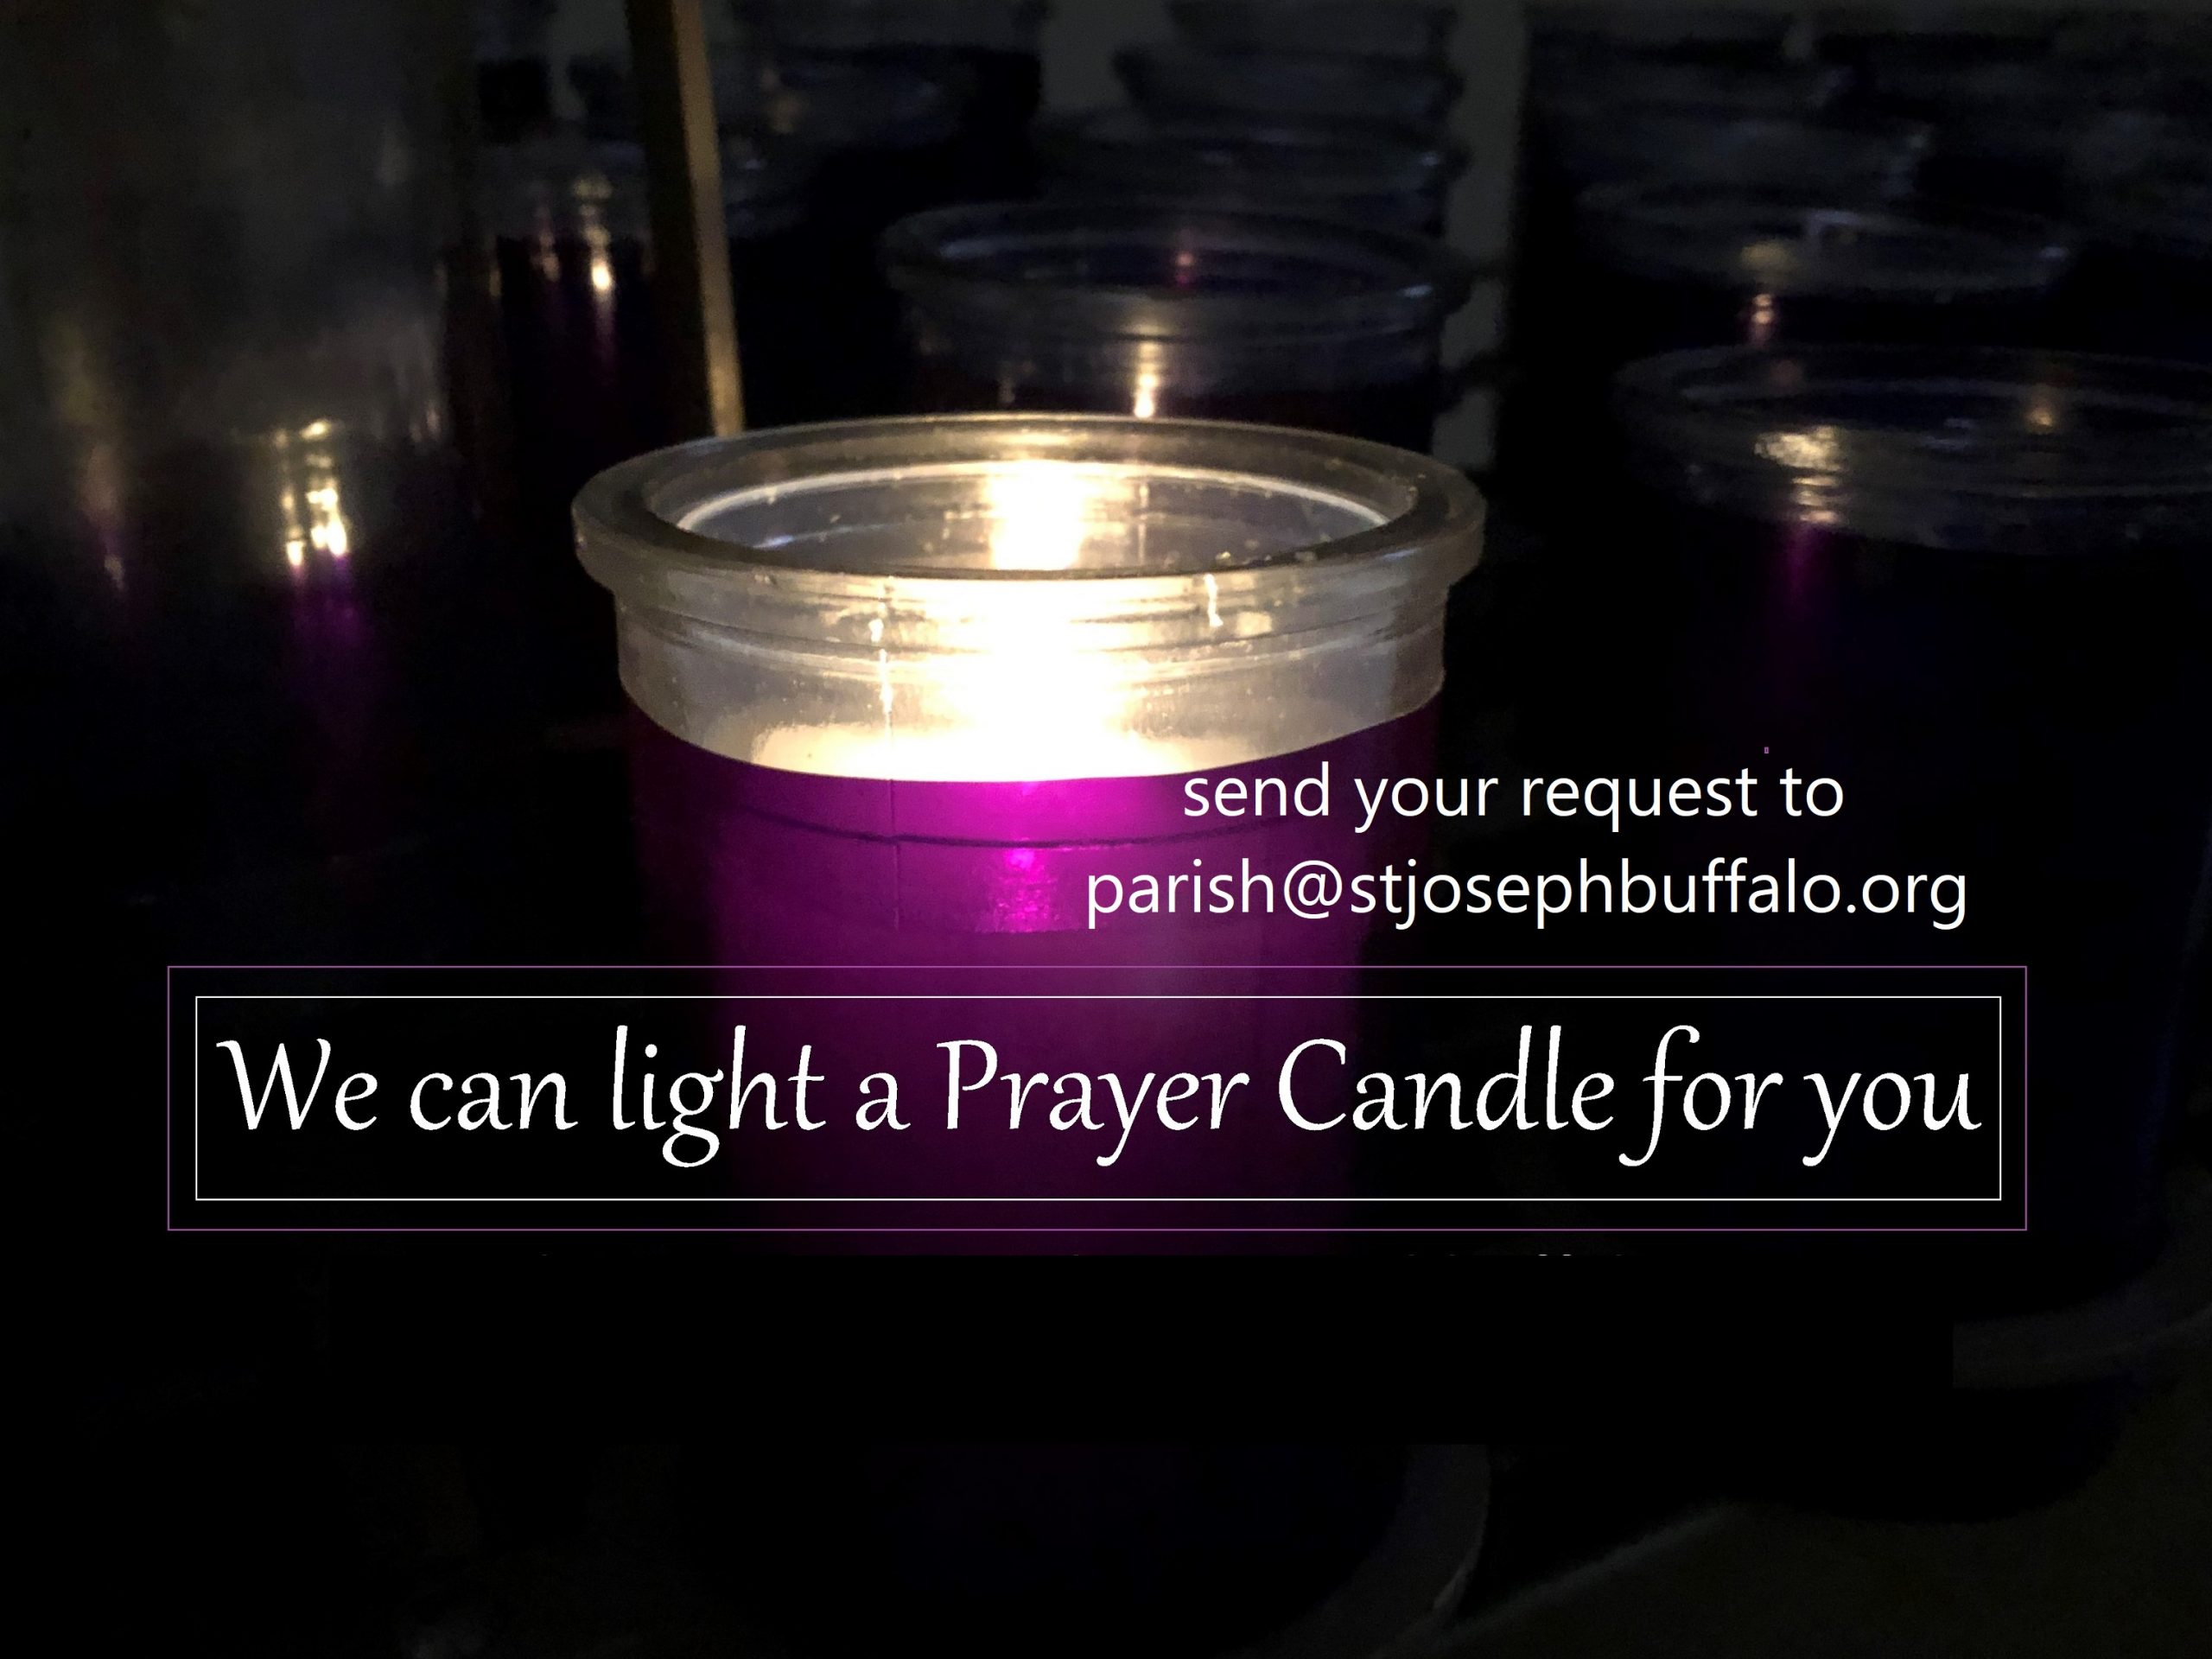 prayer candle.jpg fb.jpg 80%.jpg redo